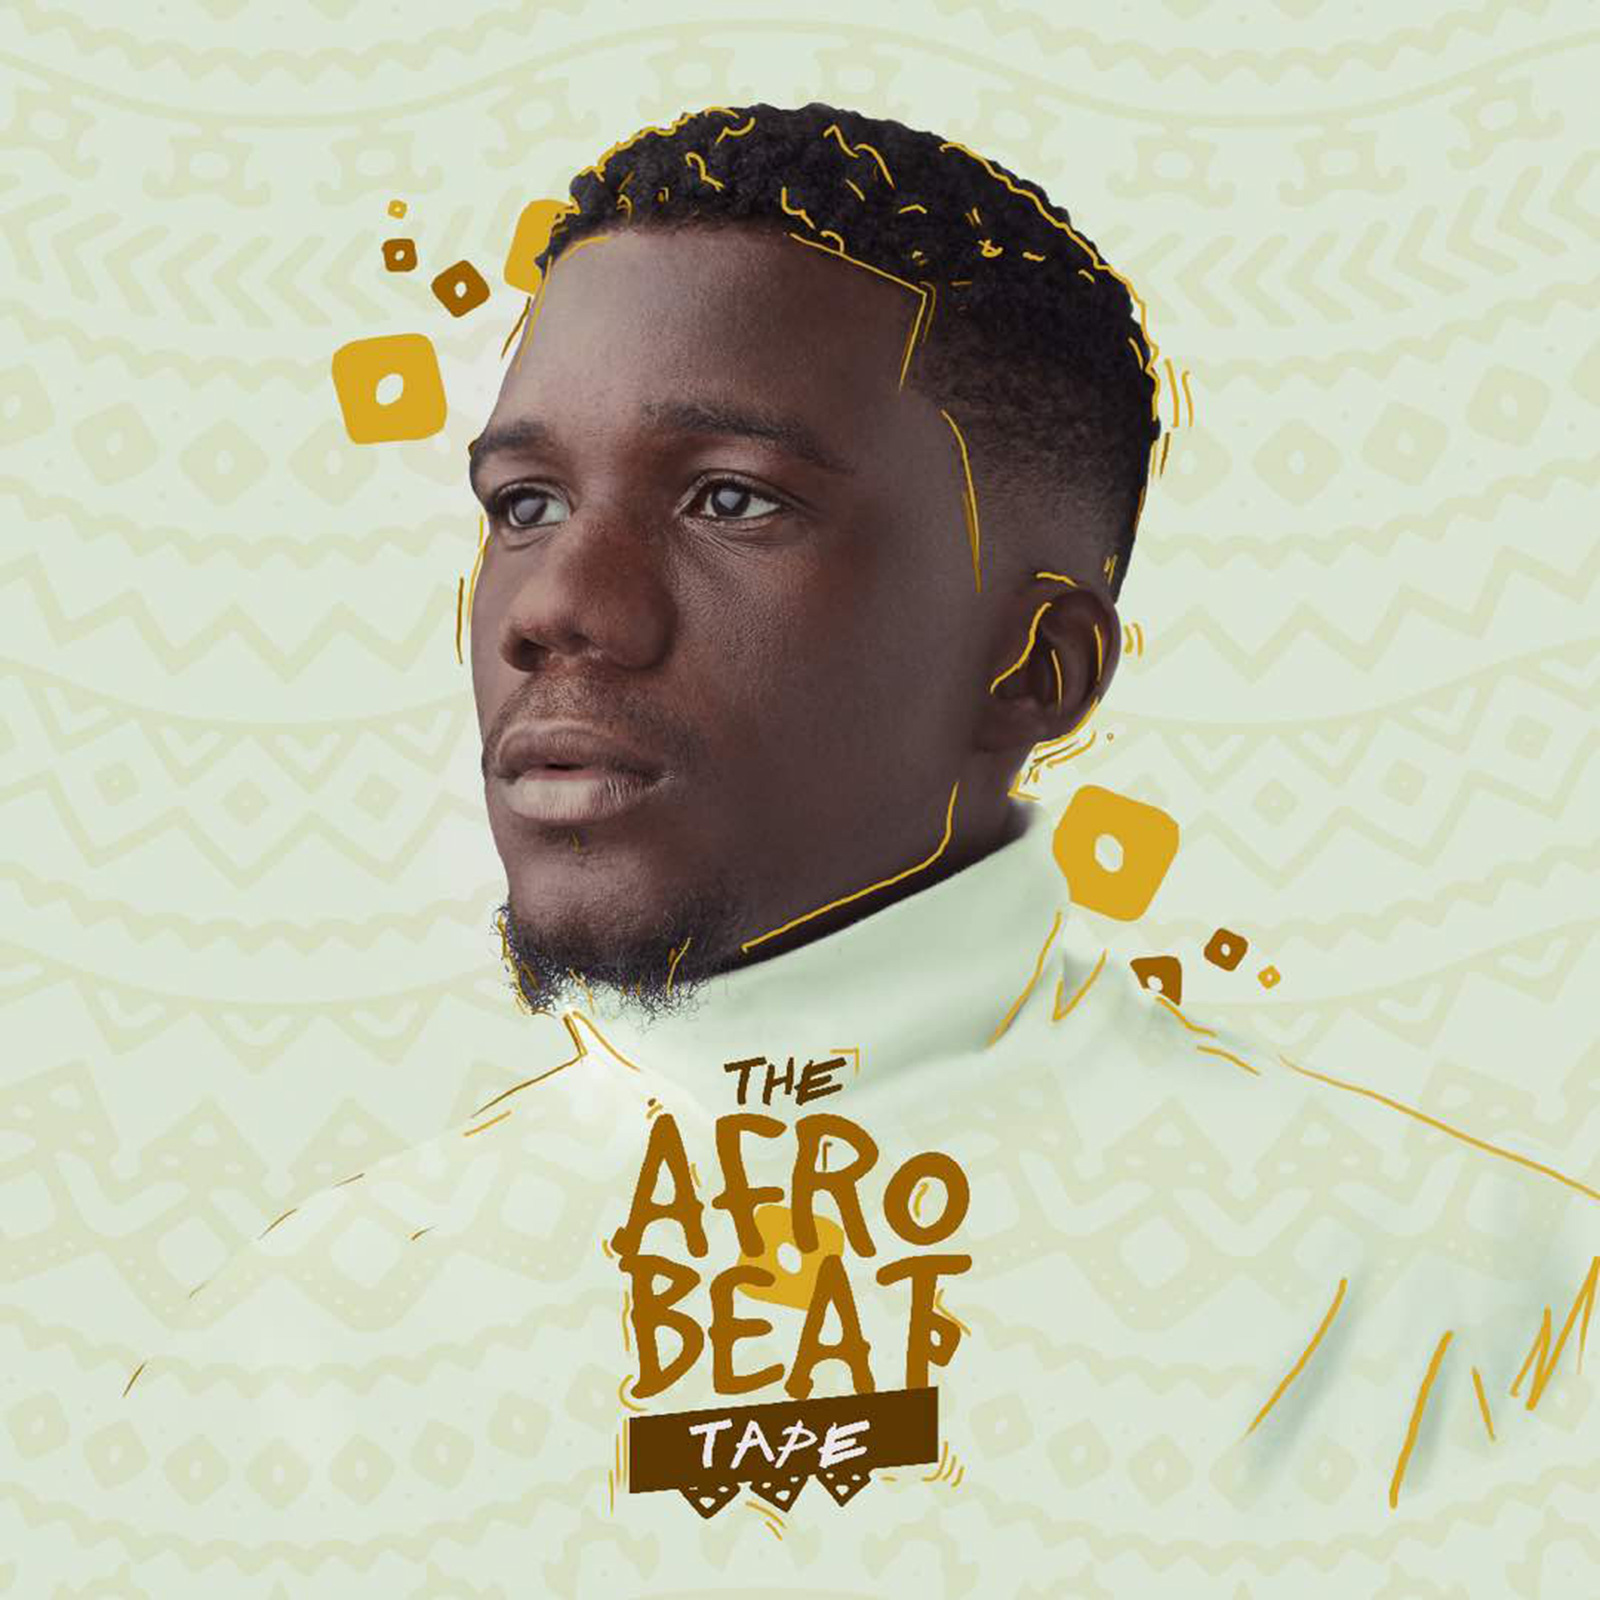 The Afrobeat Tape by Paq